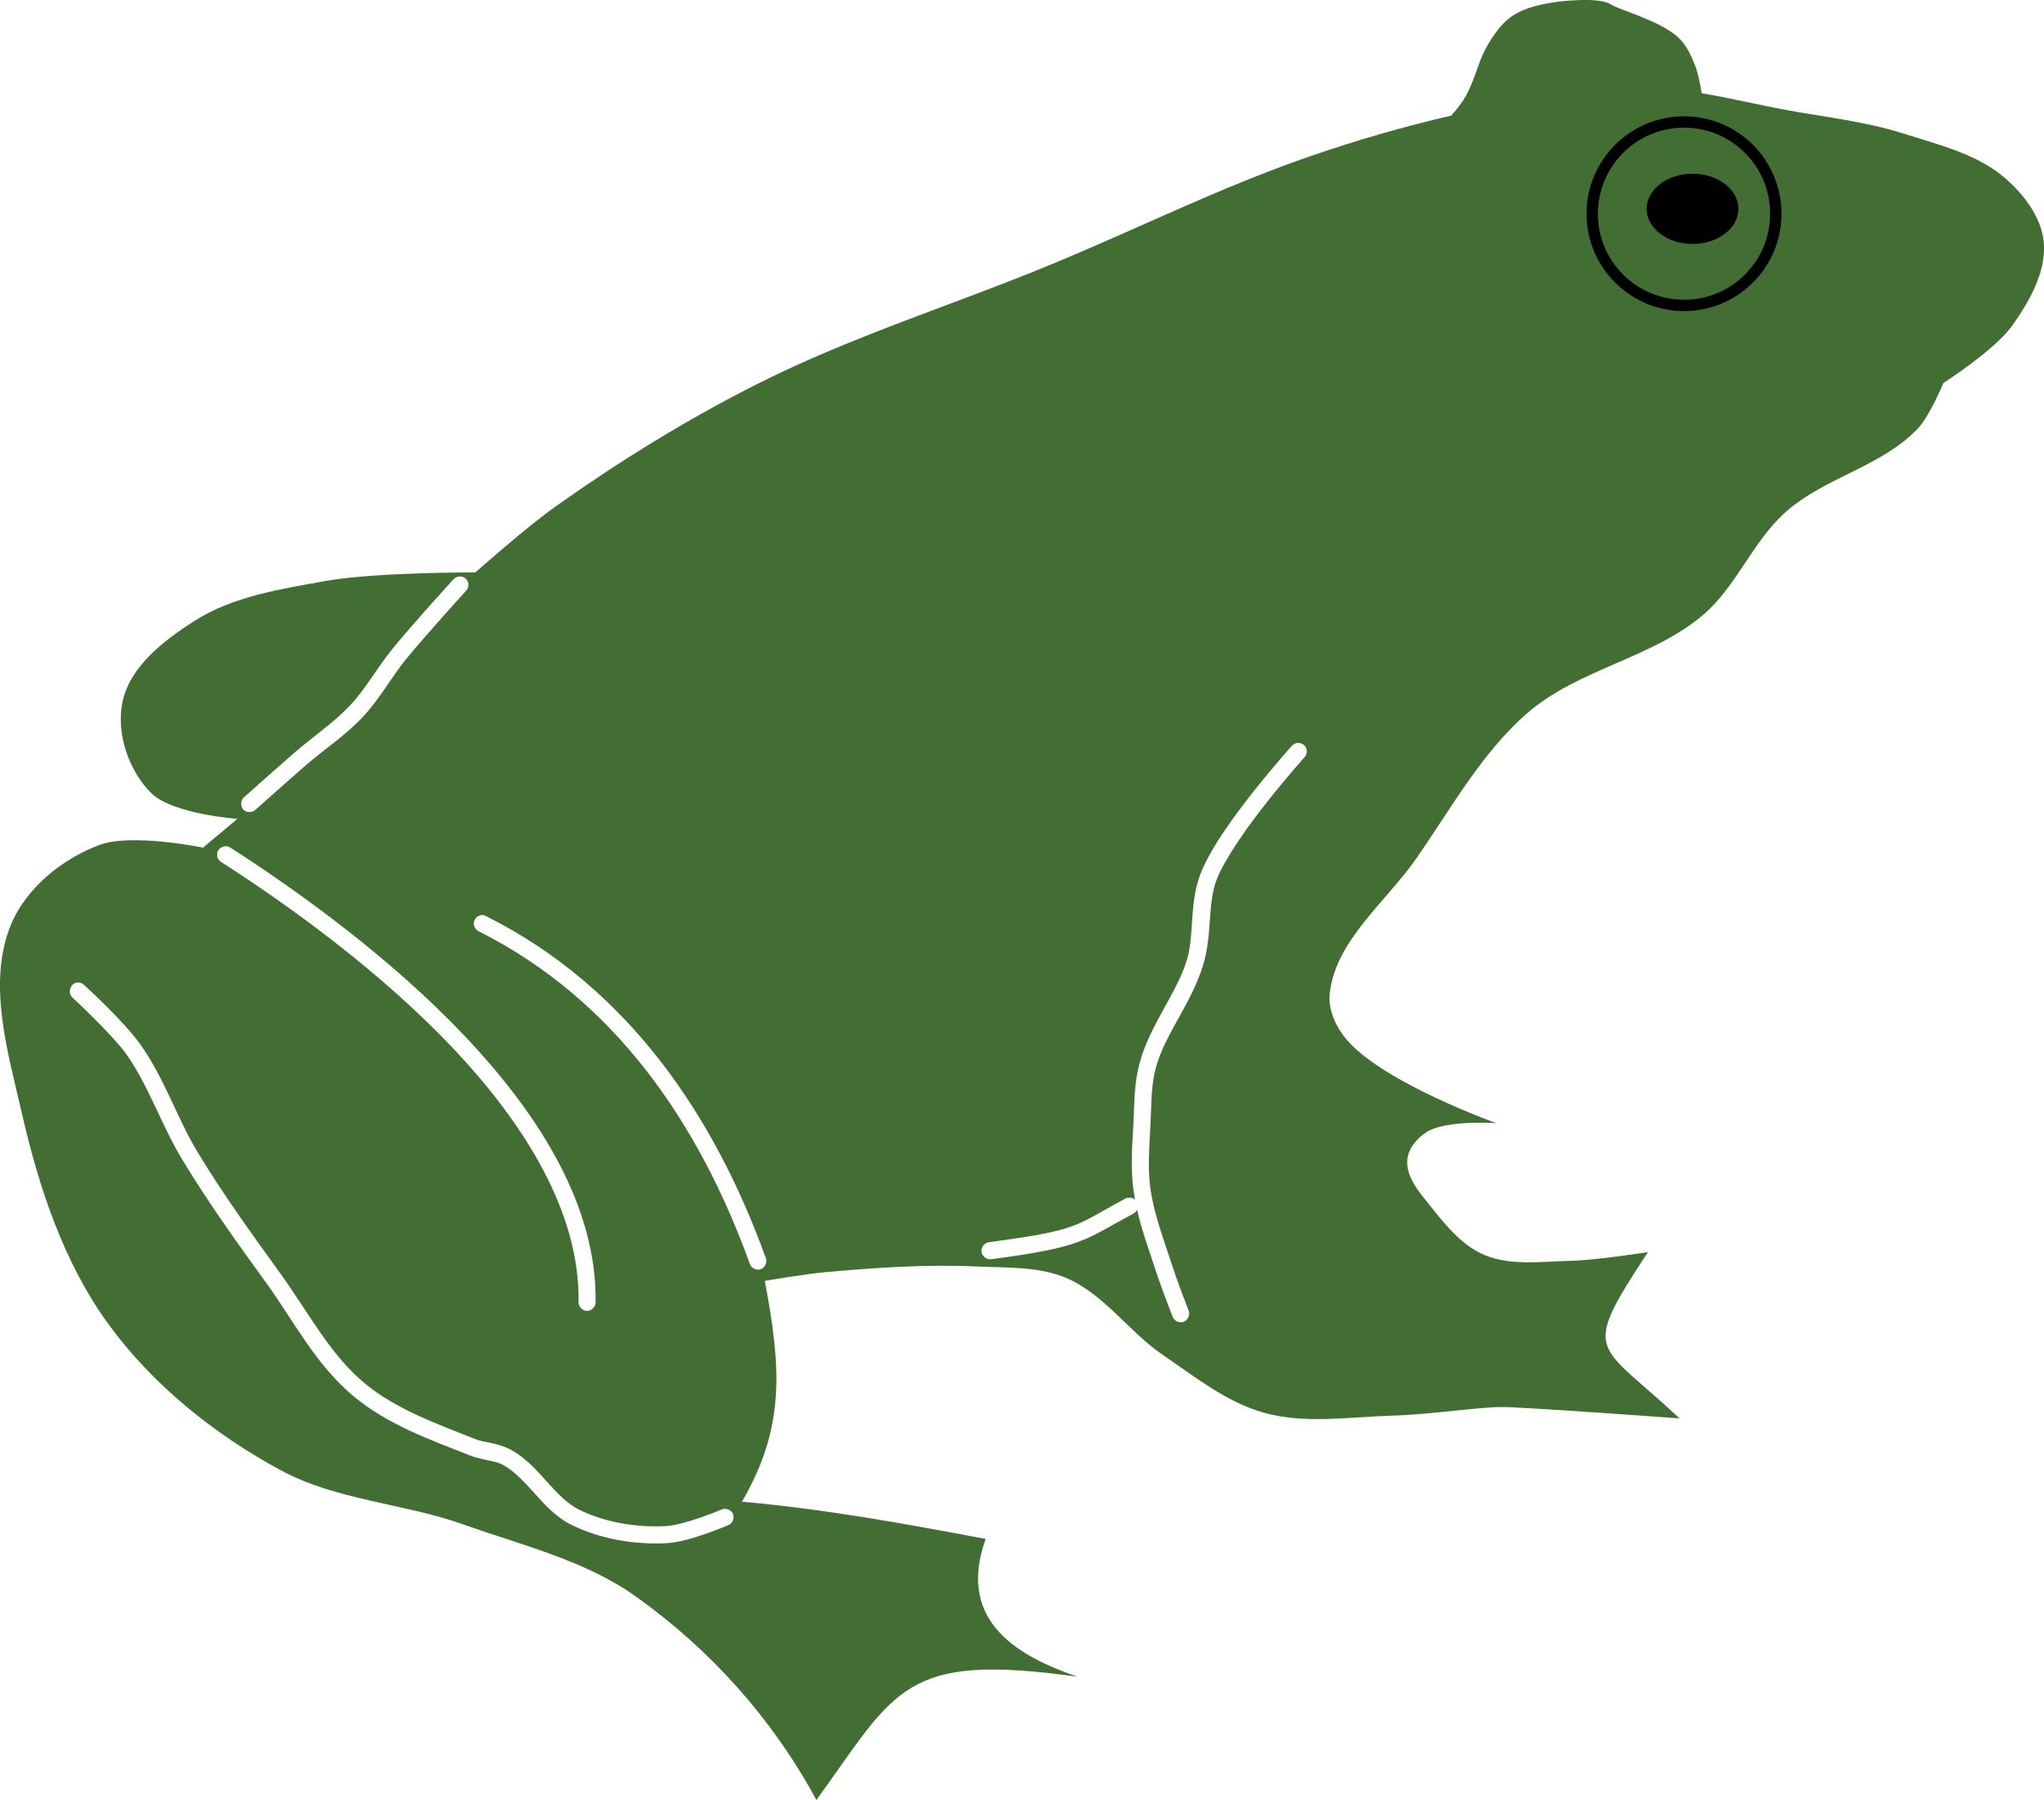 Frog by rones big. Frogs clipart muscular